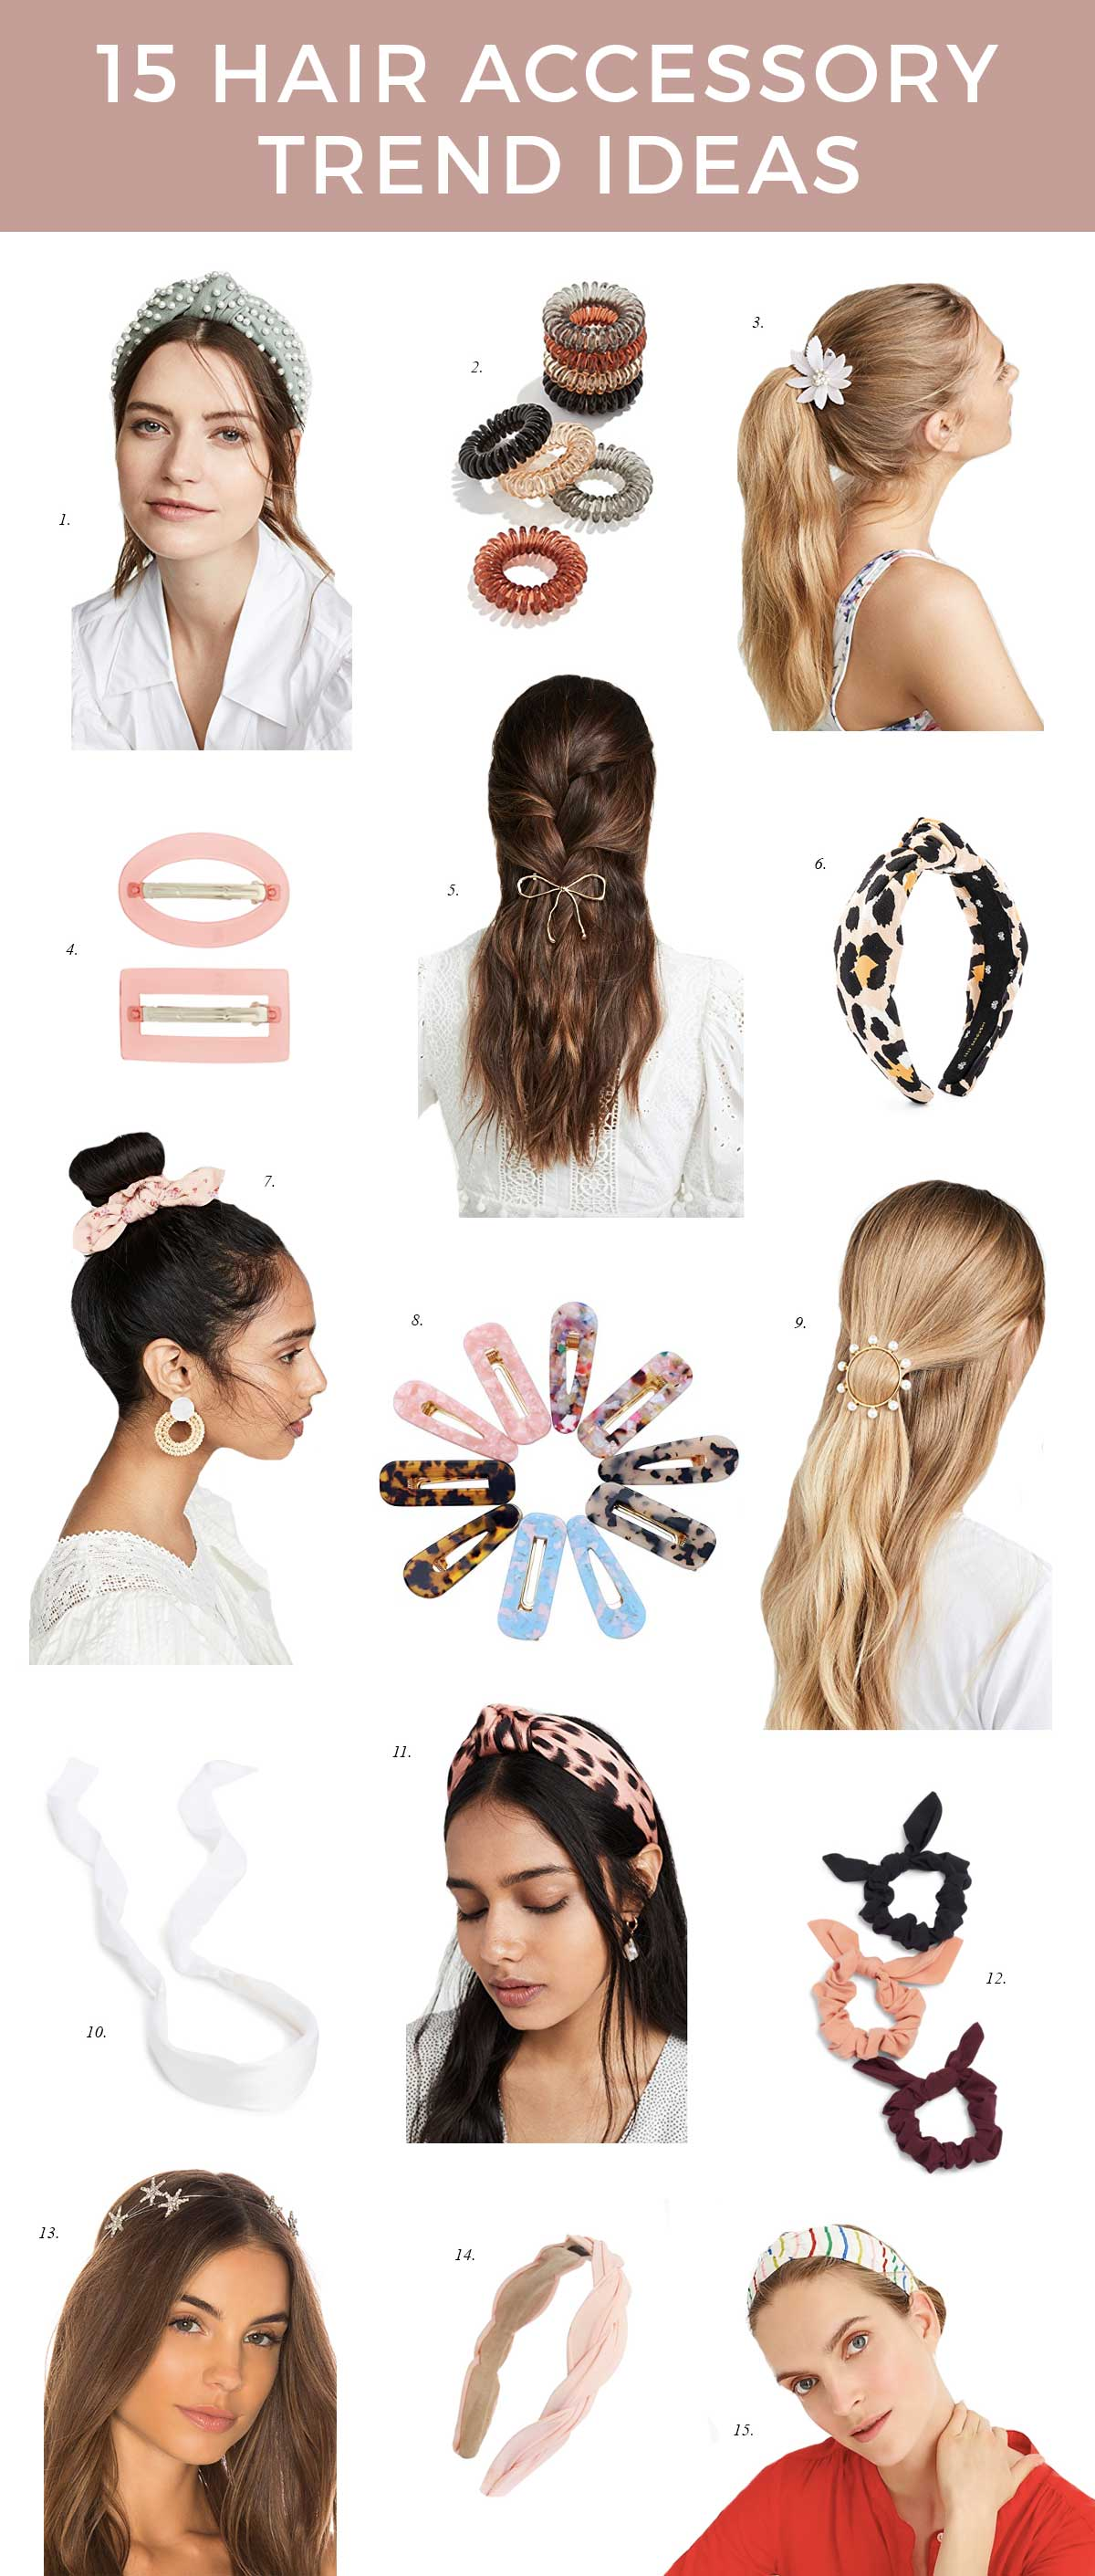 most popular 15 hair accessory trend ideas 2019